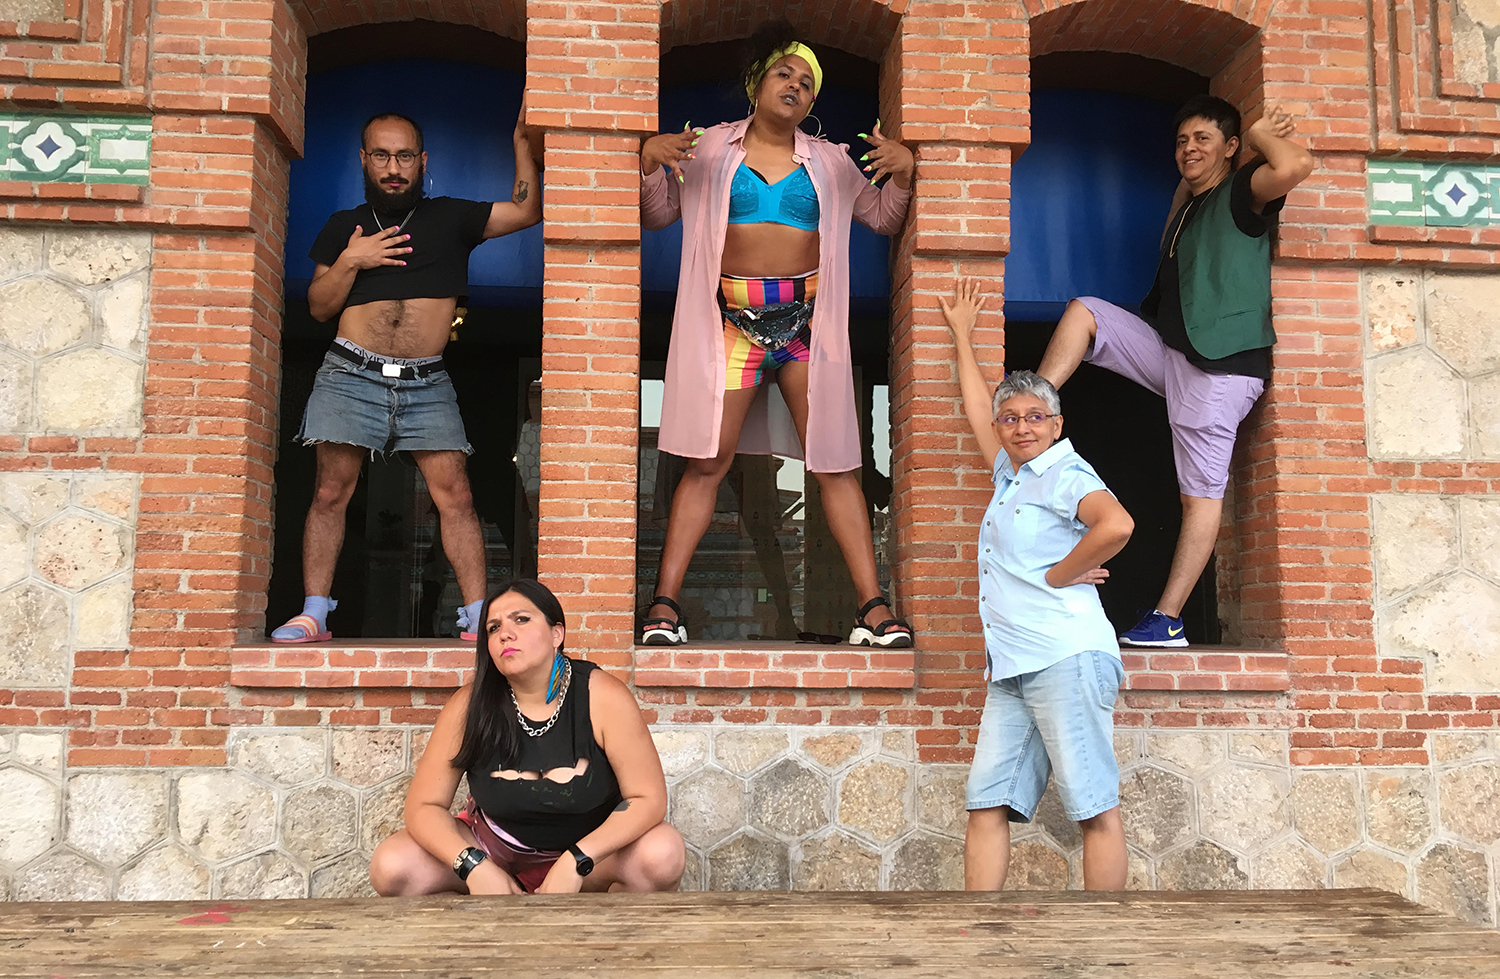 Colectivo Ayllu, 'the abominable sin of sodomy', 2018, photo-performance at the Wharf of the Caravels, Palos de la Frontera, courtesy the artists